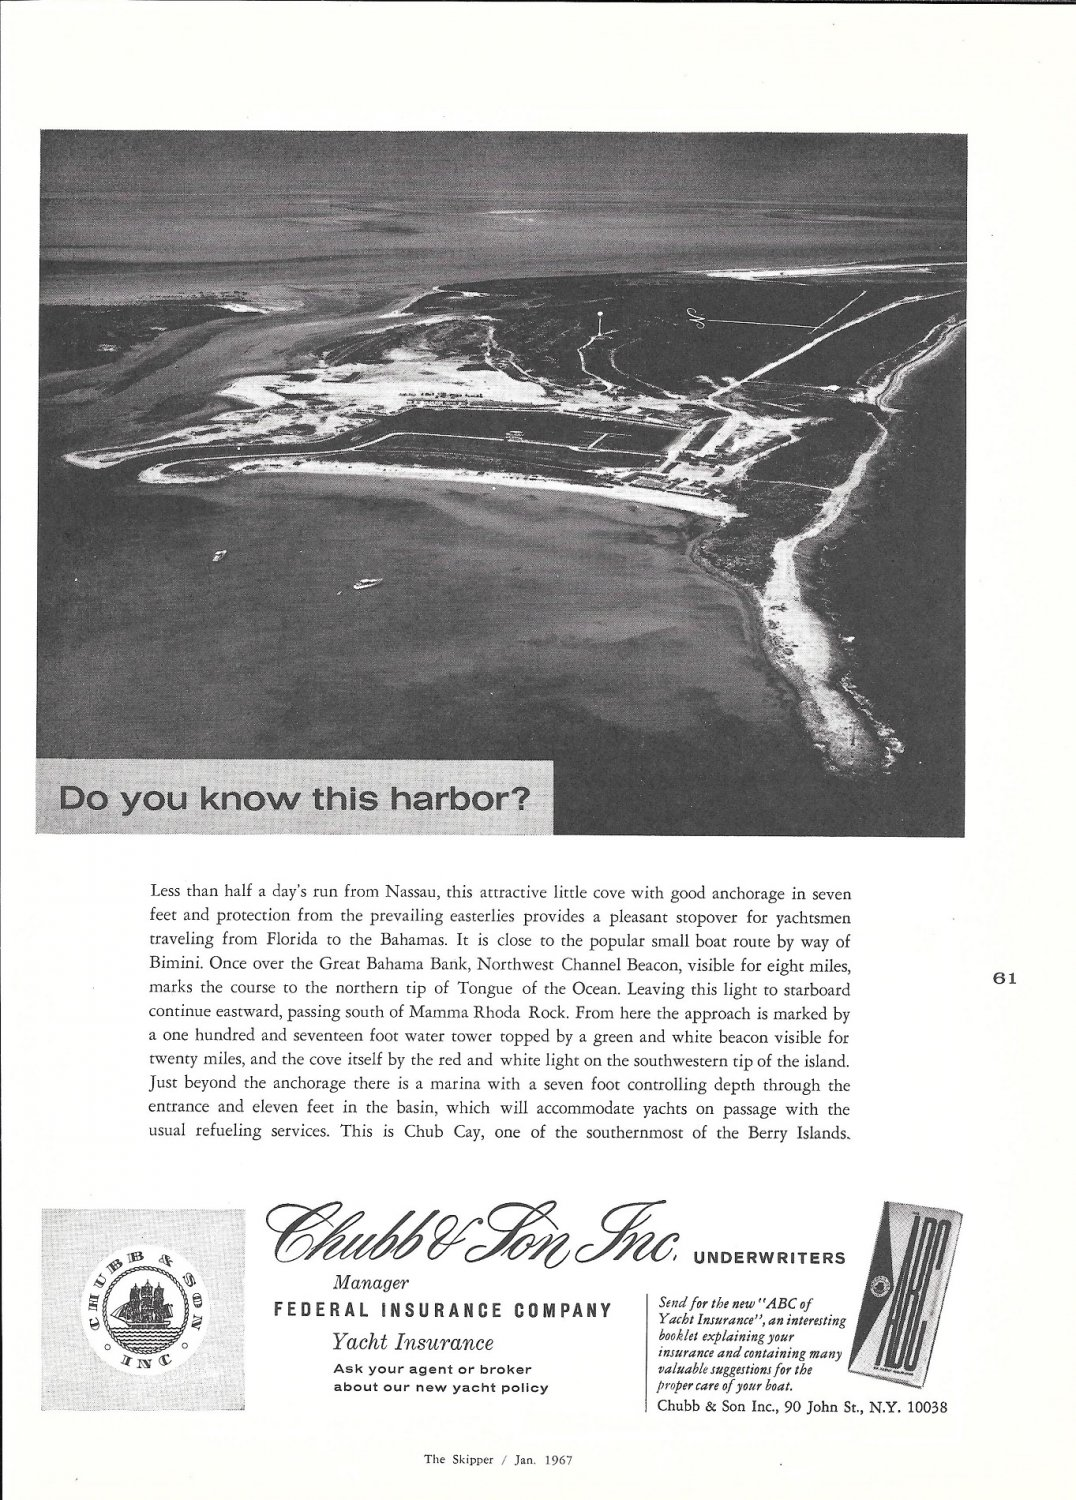 1967 Chubb Insurance Ad-Great Photo of Chub Cay Berry Islands